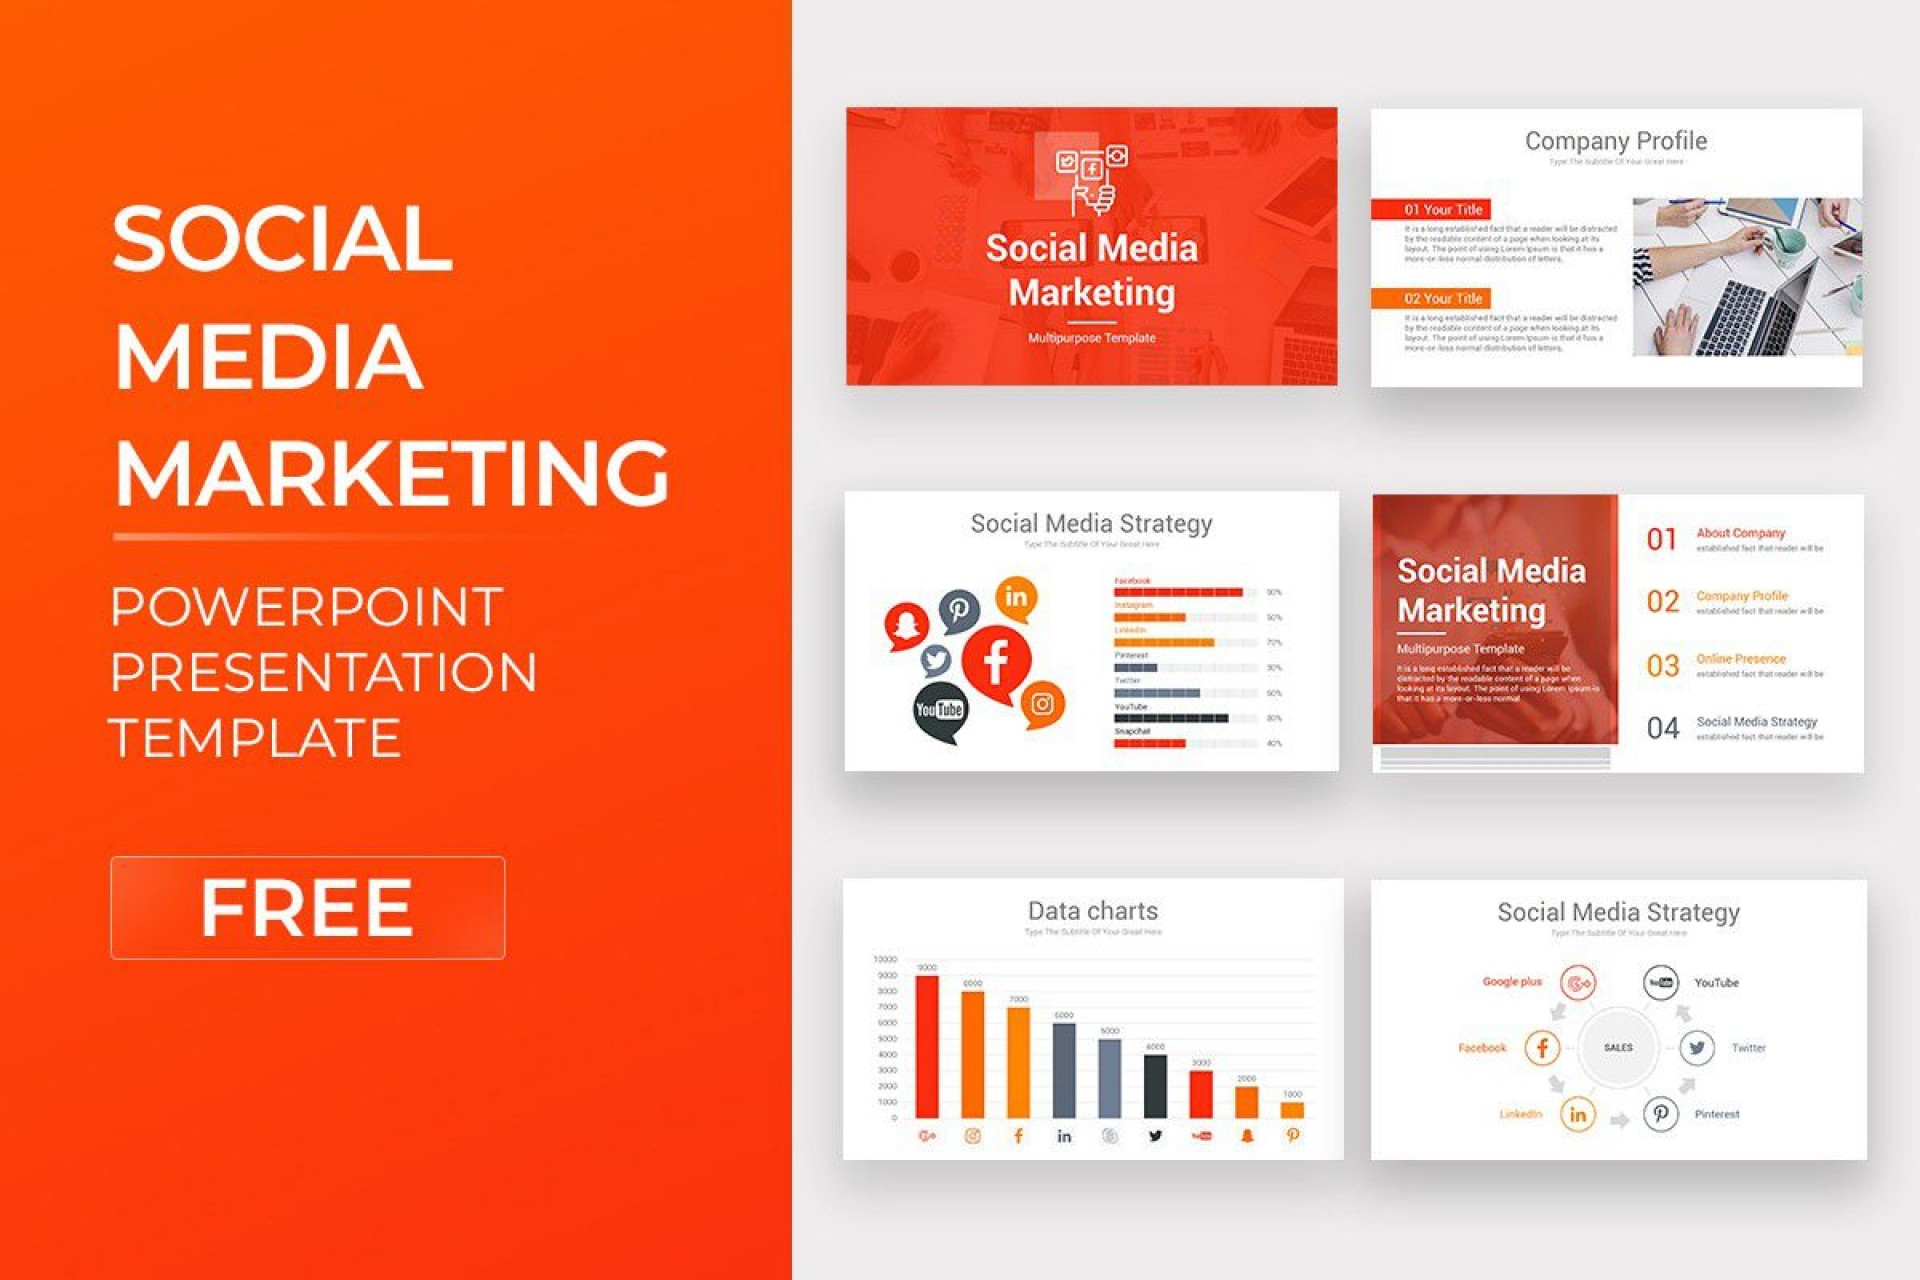 007 Sensational Social Media Marketing Template Picture  Free Wordpres Ppt1920